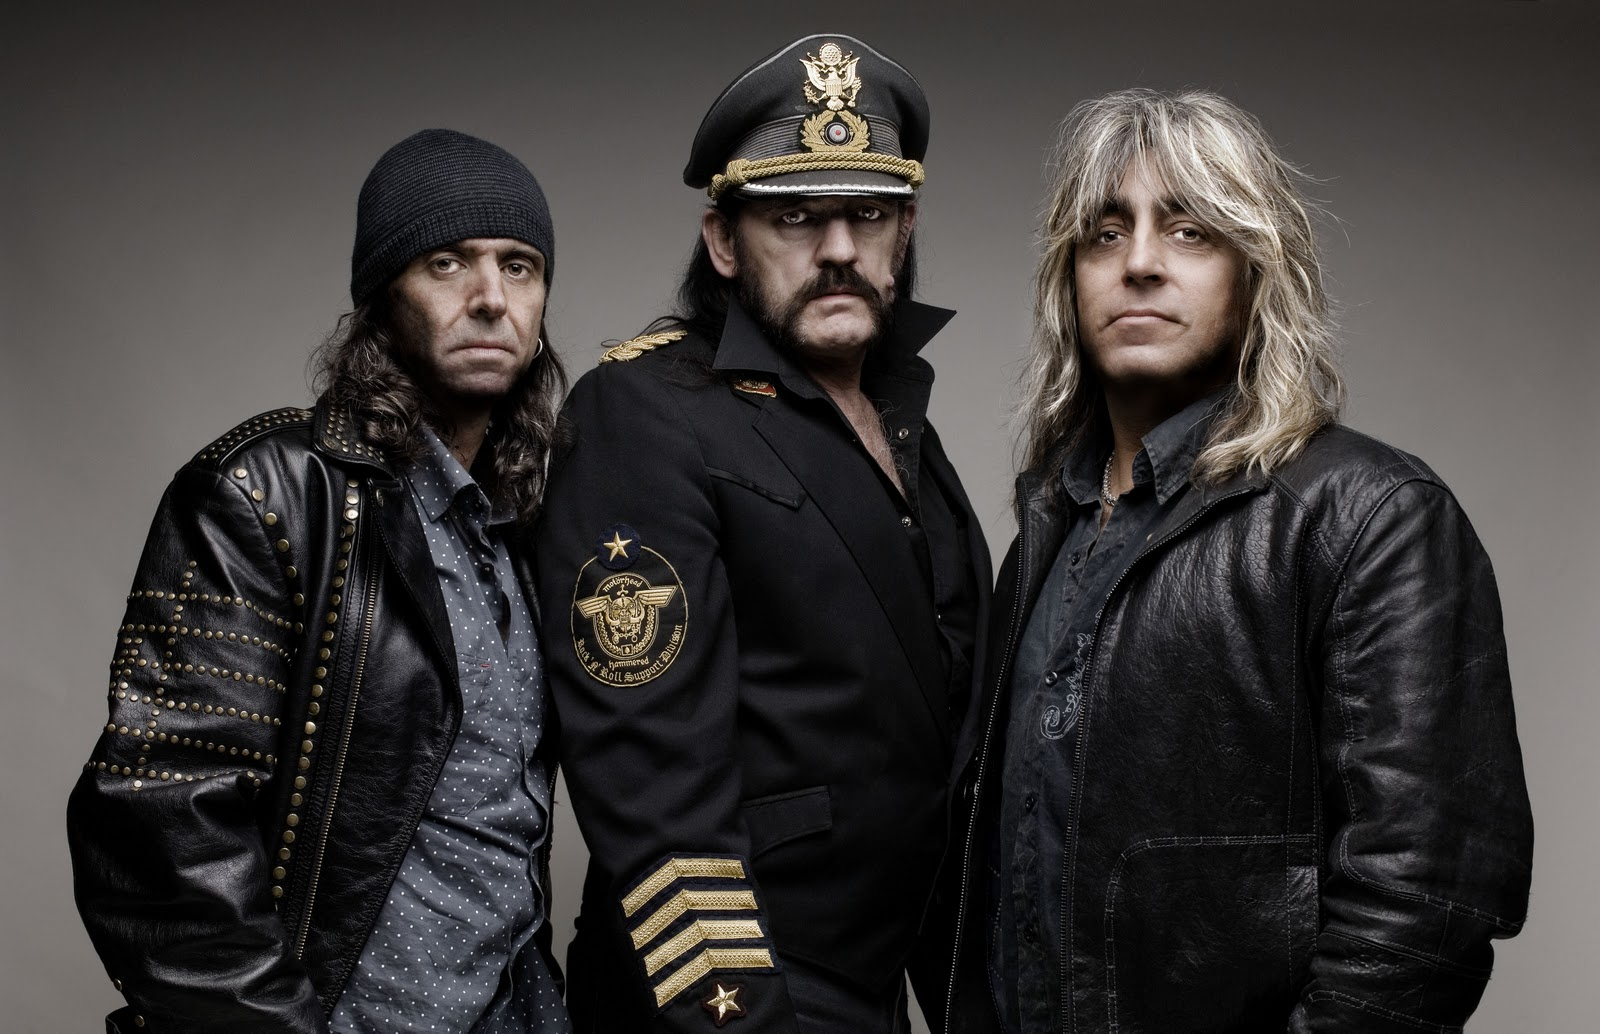 motorhead photo 1 Ídolos Etílicos   Lemmy Kilmister do Motörhead